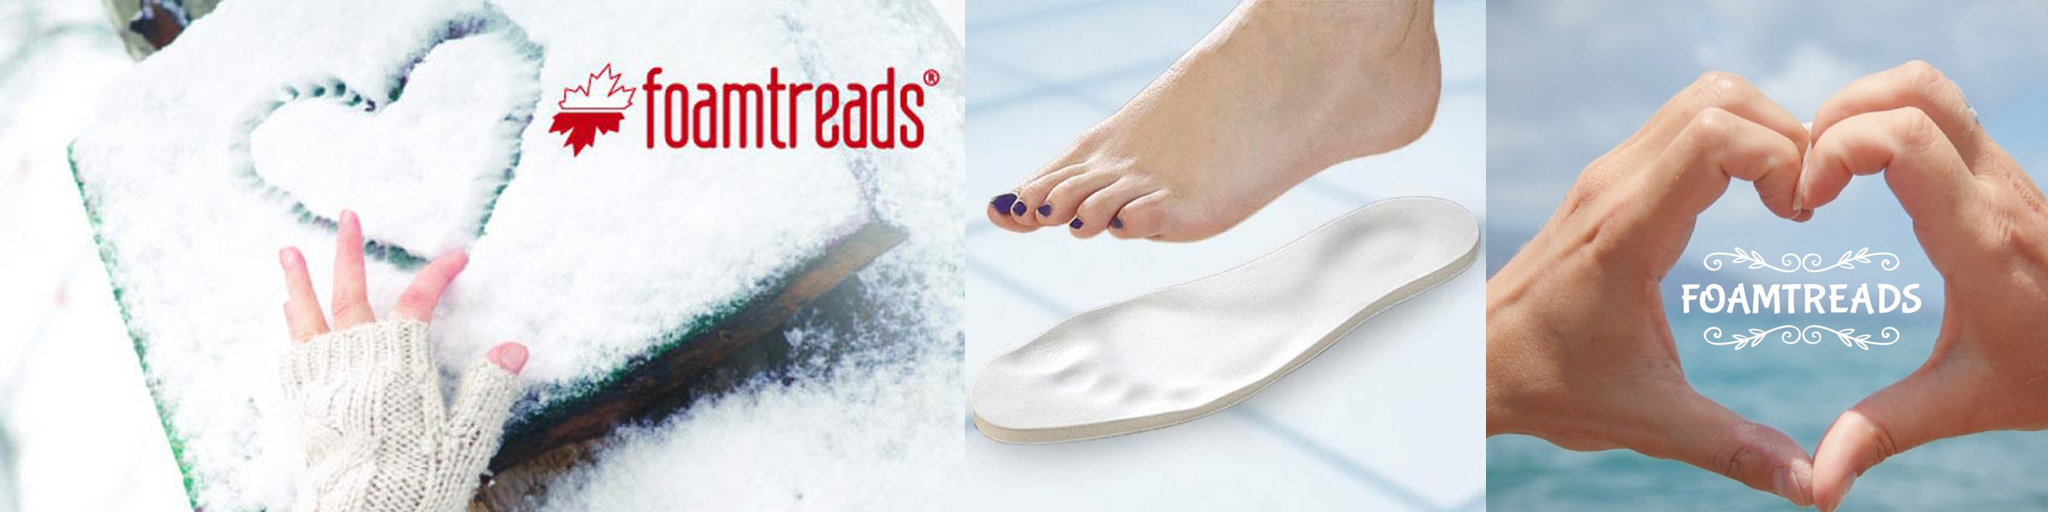 Foamtreads Collection Banner